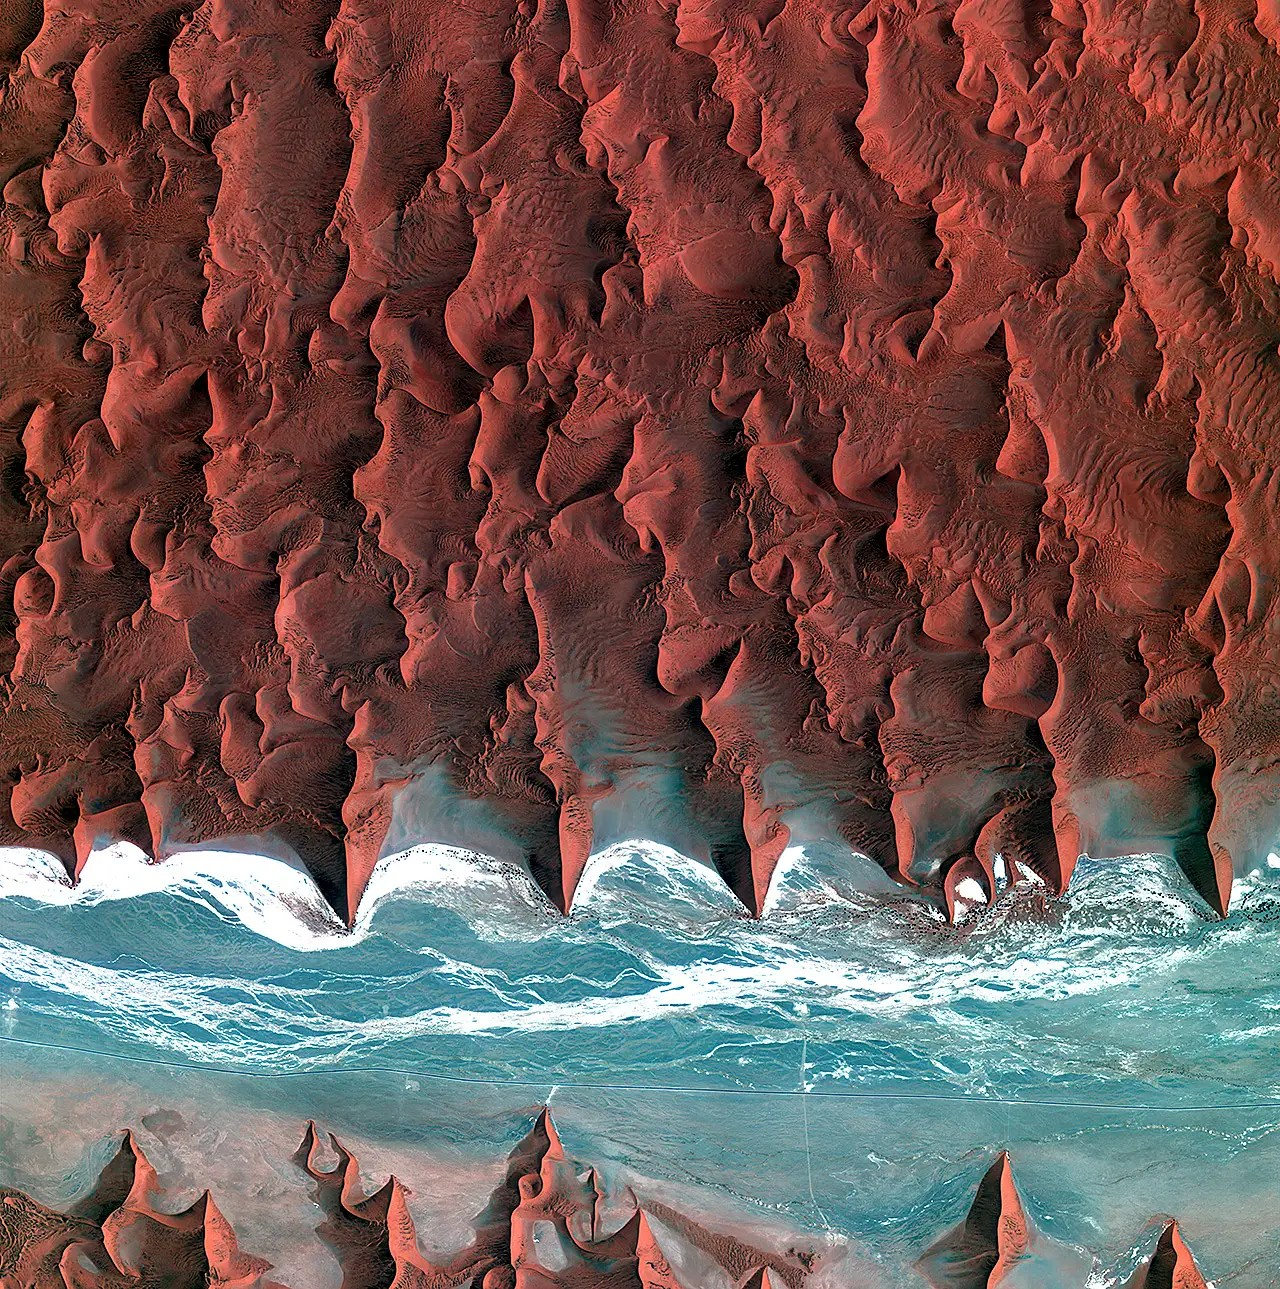 These are the dunes of the Namib Desert, taken by Korea's Kompstat-2 satellite. The blue and white area is the dried riverbed of the Tsauchab river.